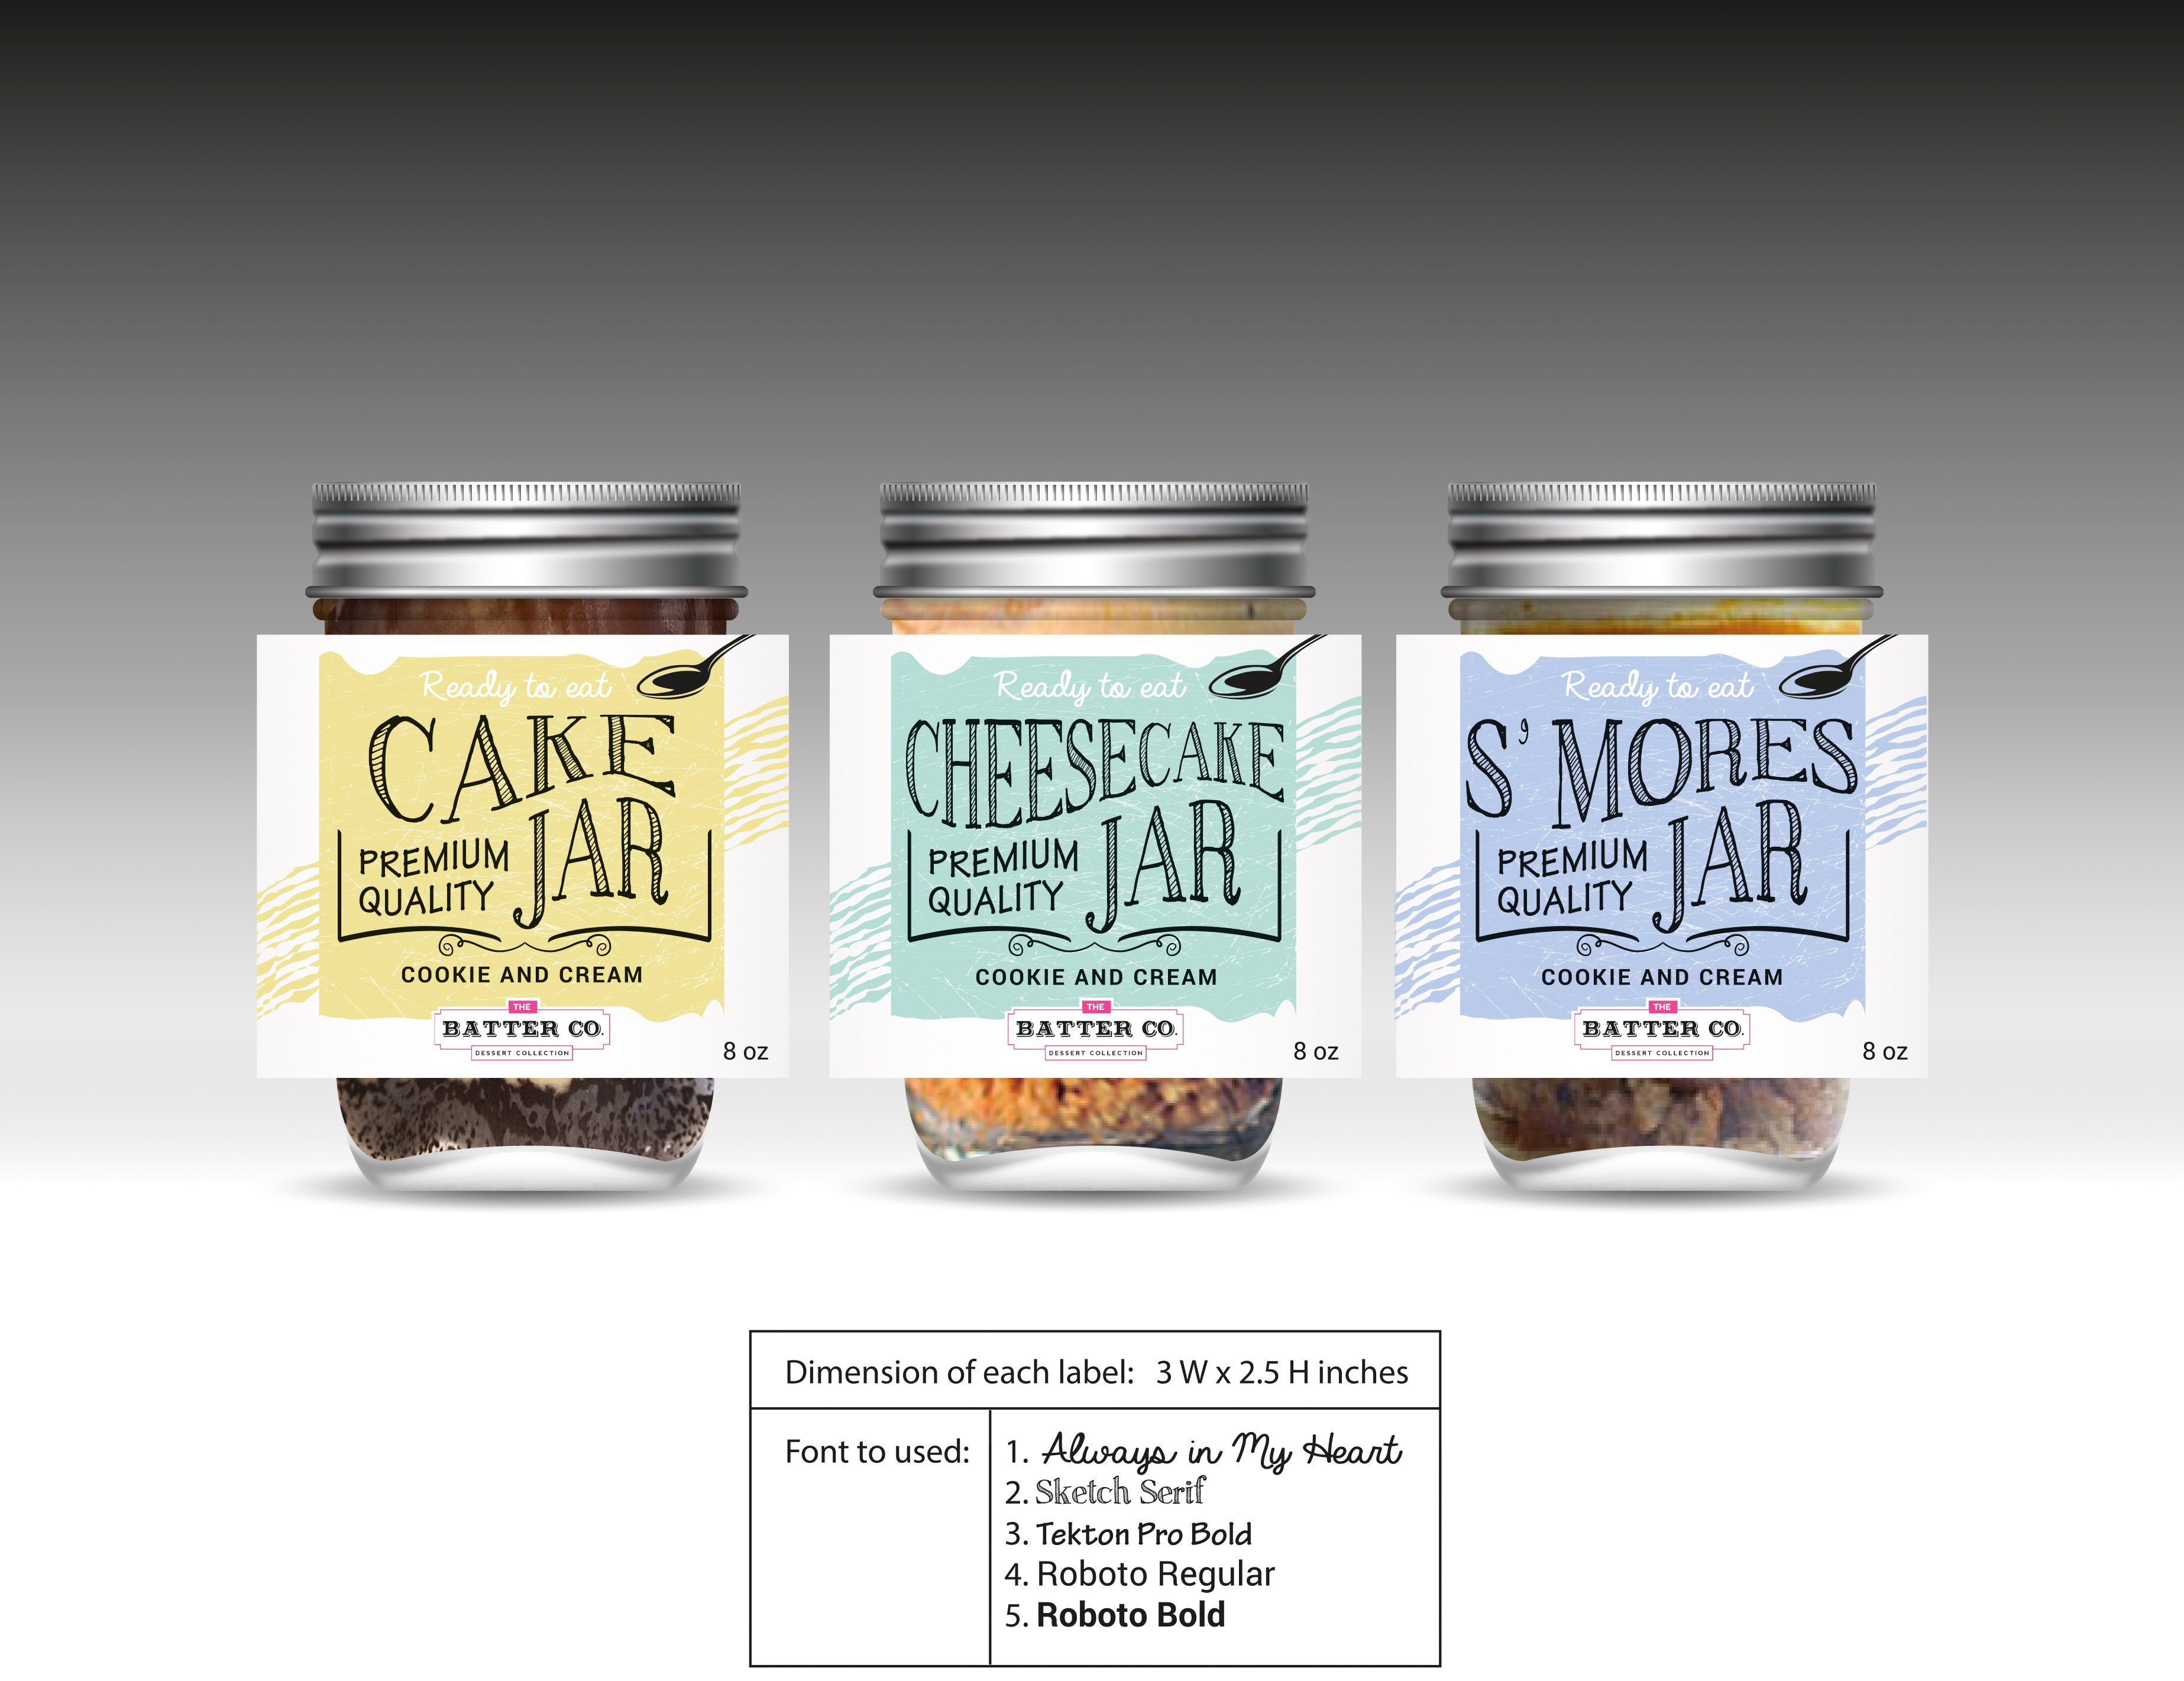 EDGY! FUN! LUXURIOUS! Create a great product label for our mason jar dessert!